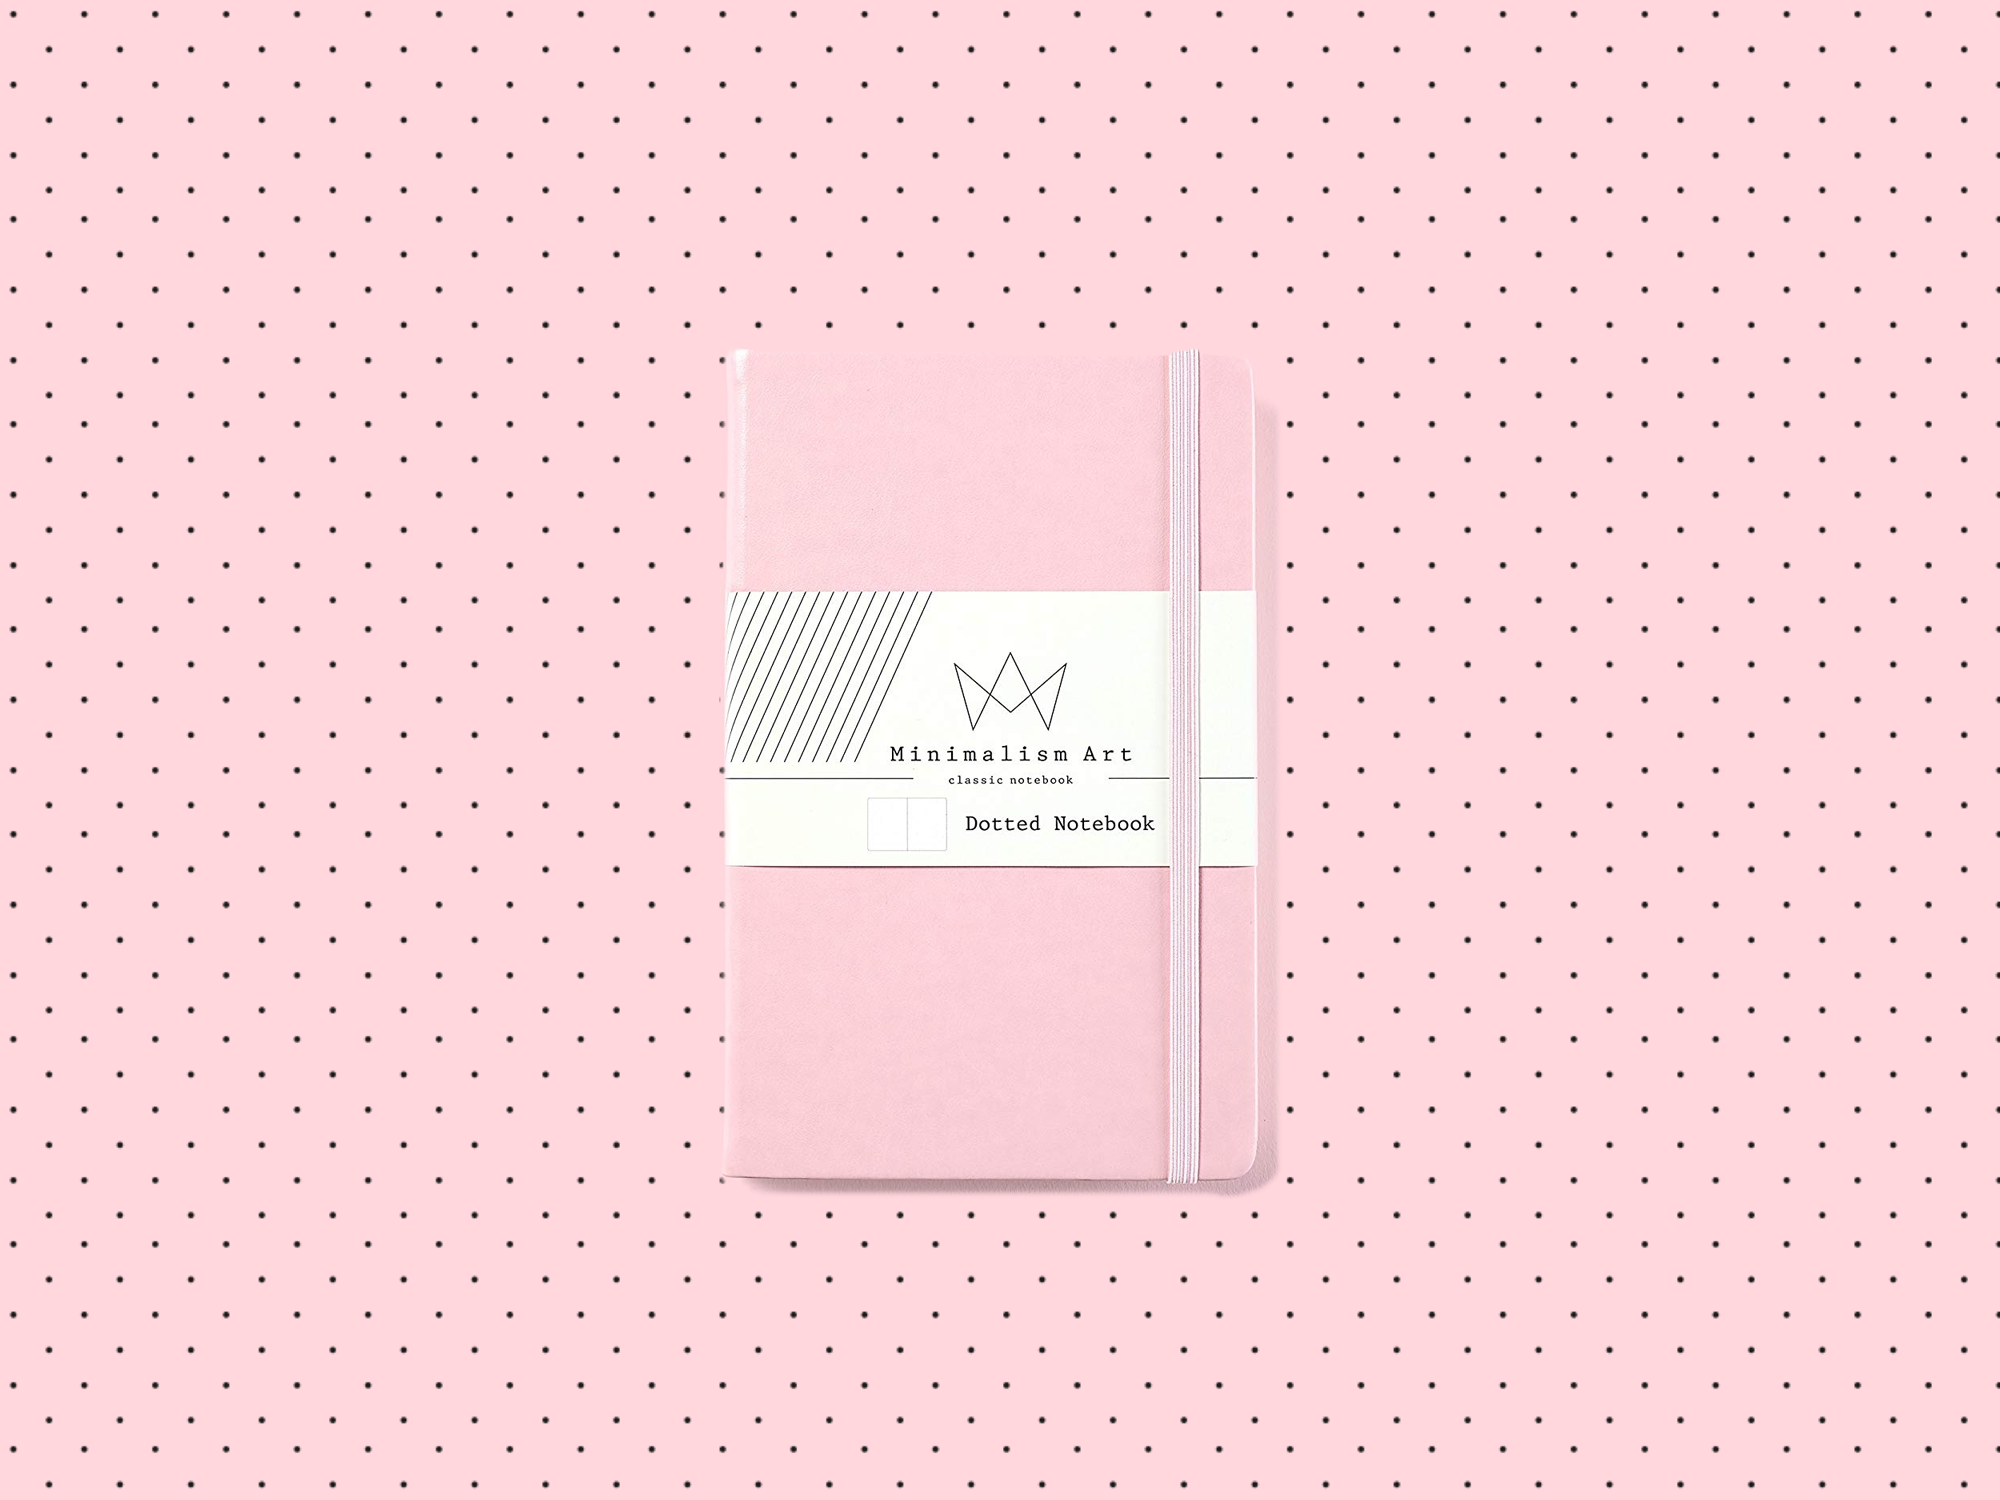 10 Best Bullet Journals to Buy - 2019 Top-Rated Bullet Journals and